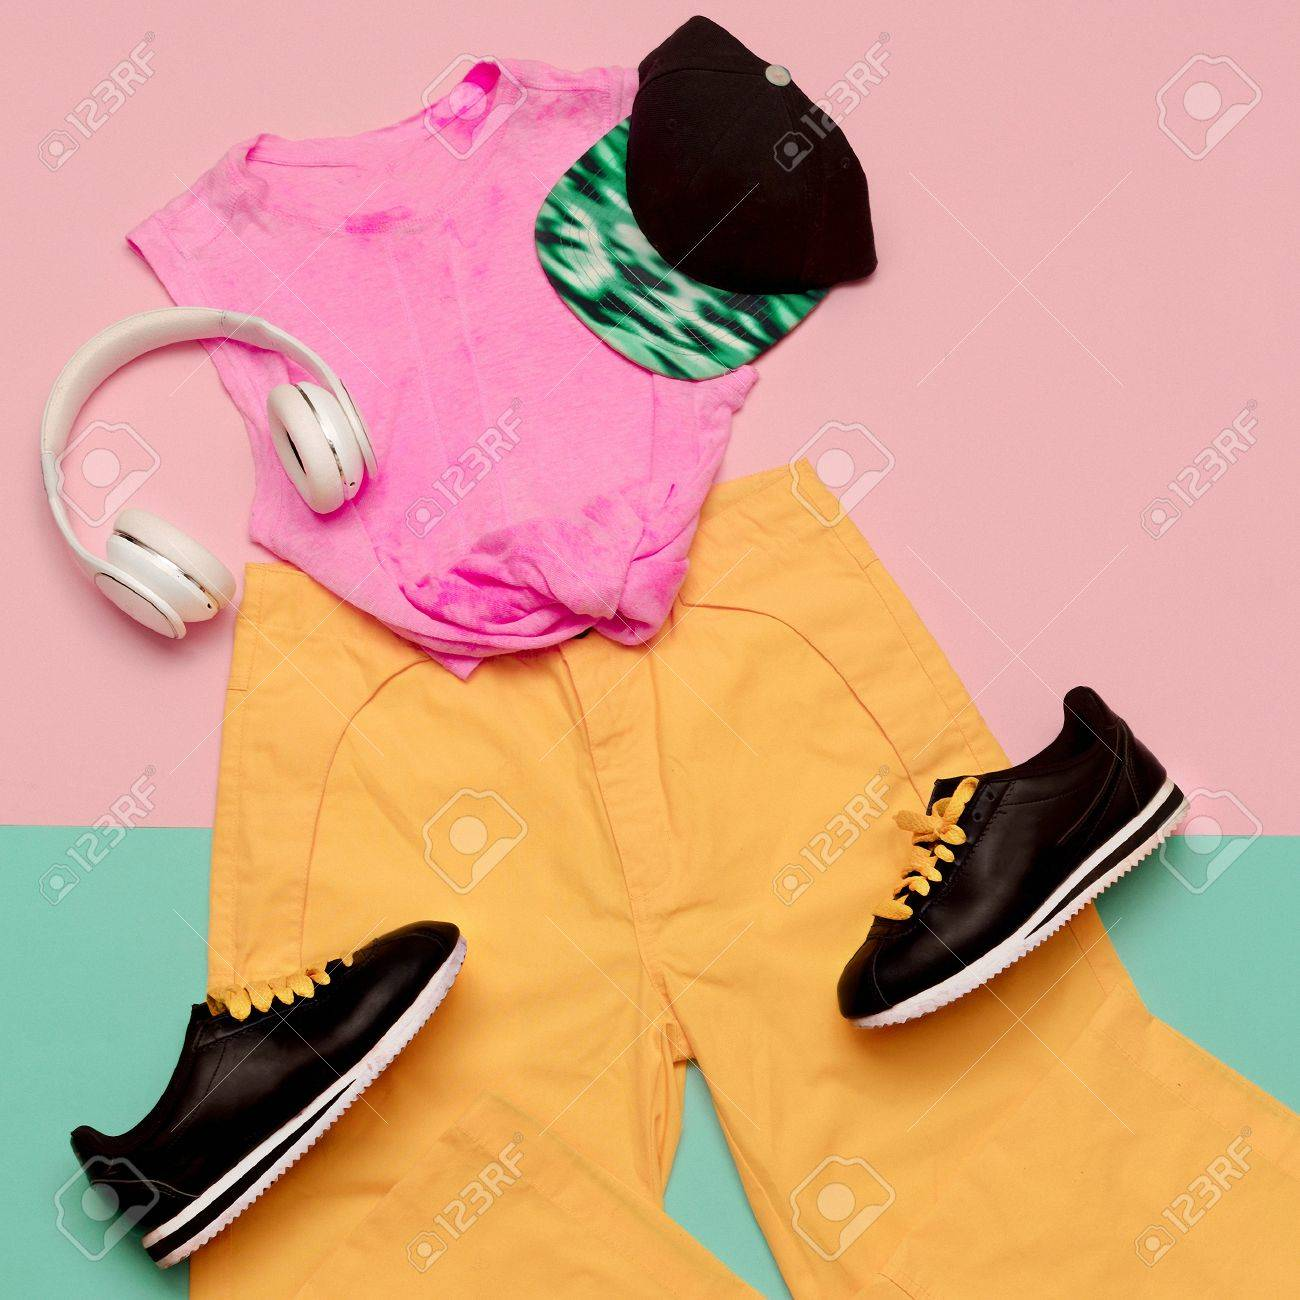 7832d627 Flat lay fashion sports outfit set: shoes sneakers, trousers and top bright  background.